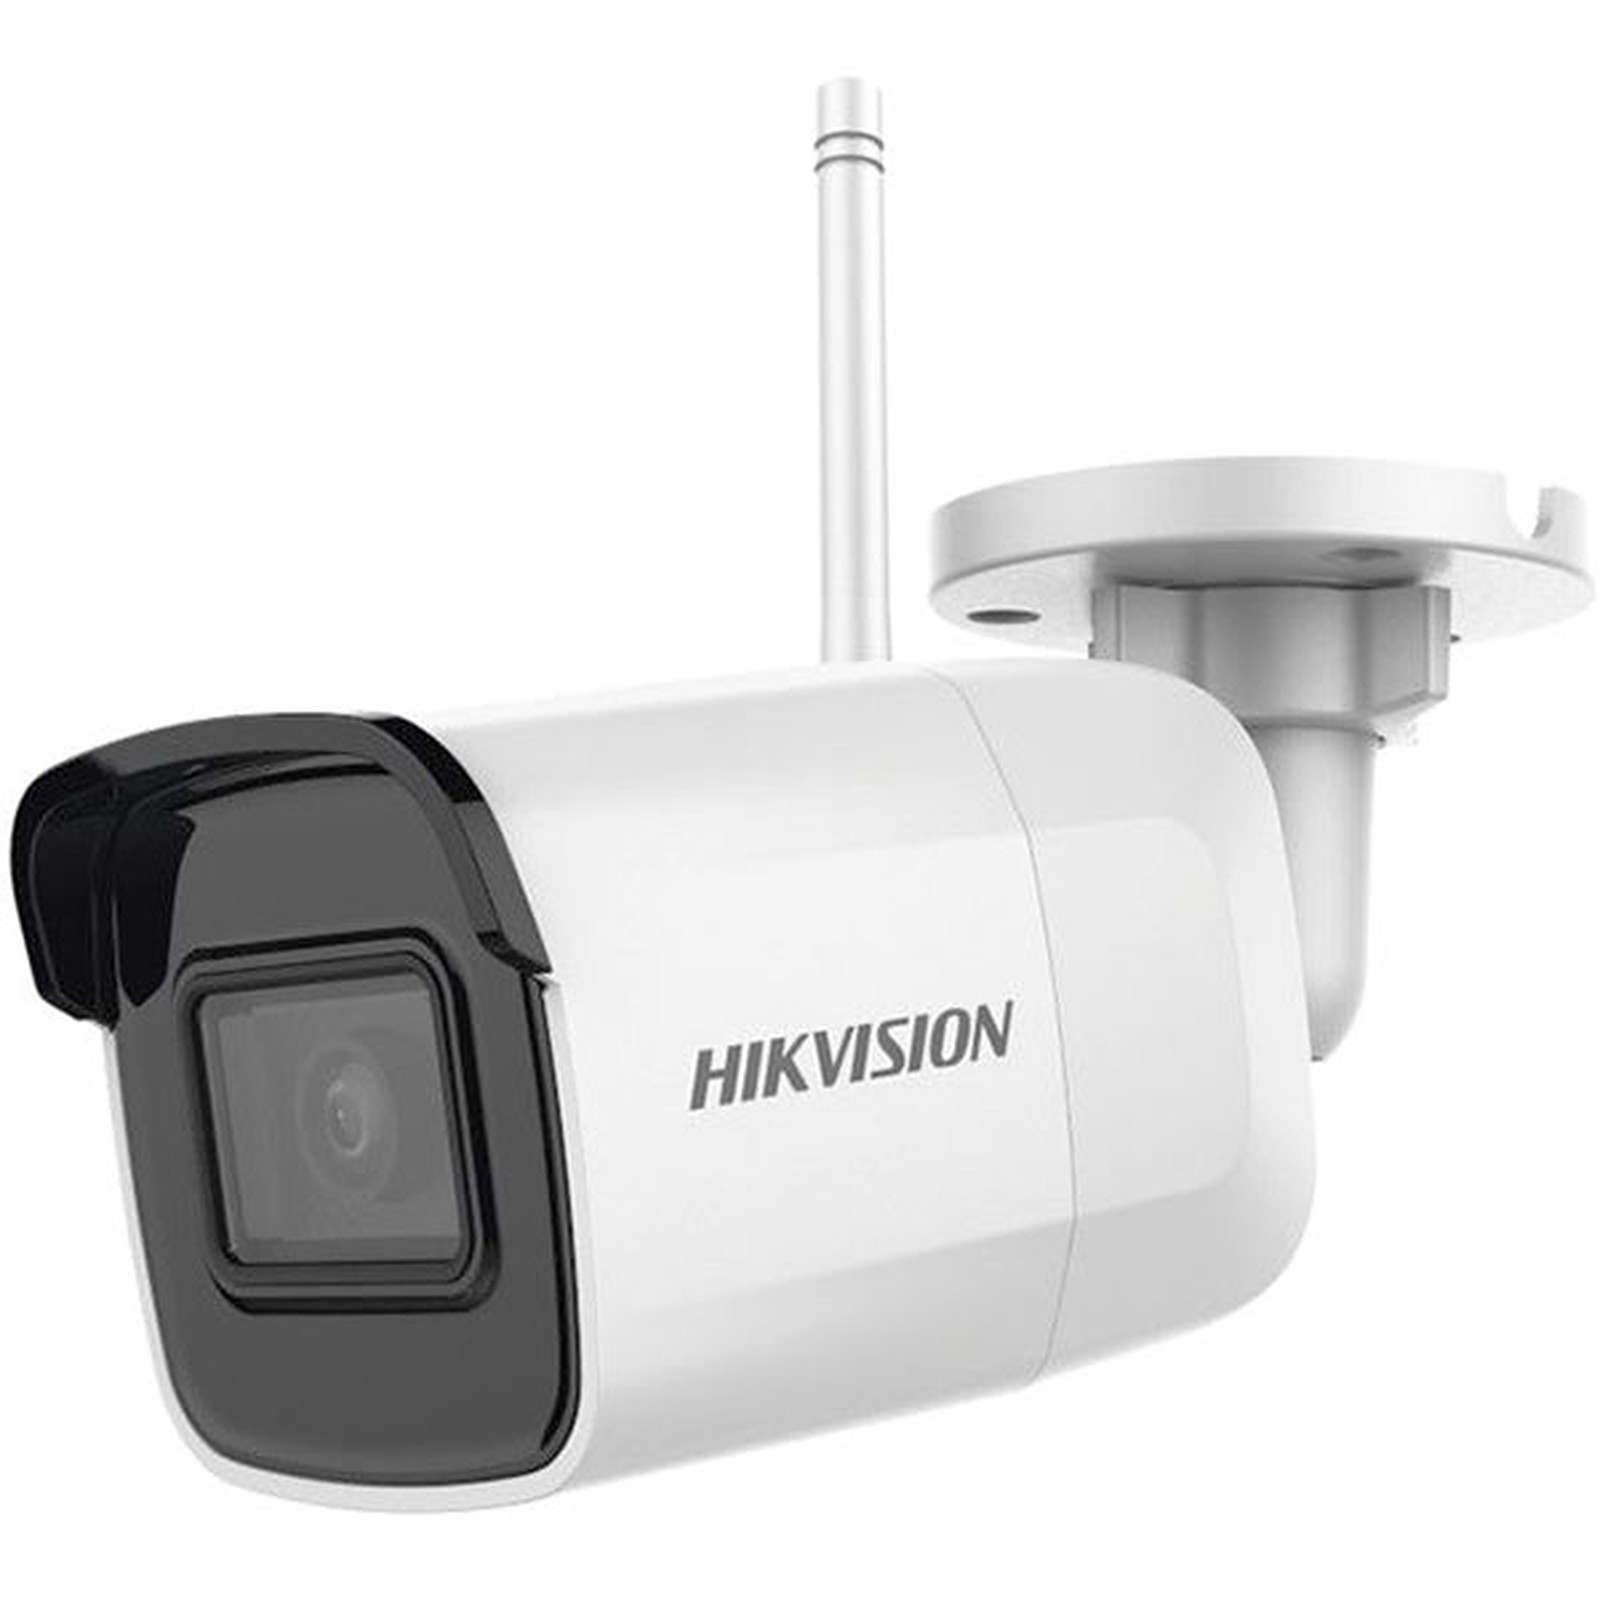 Camera Ip Exterieur Hikvision Wifi Hikvision Ds 2cd2041g1 Idw1